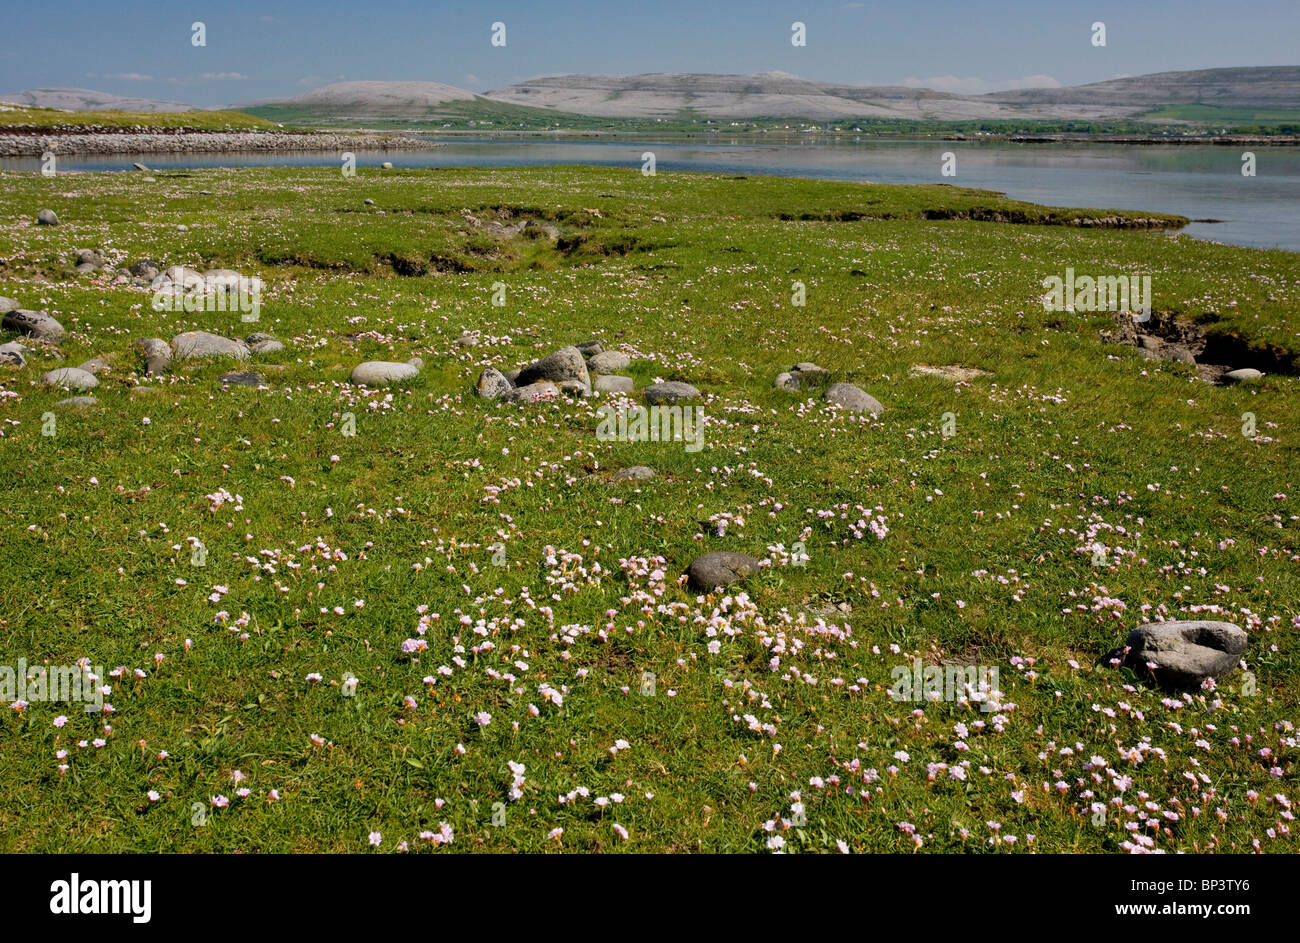 Thrift in coastal pasture/saltmarsh on the Rine sand and shingle spit, Galway Bay, the Burren, Eire - Stock Image